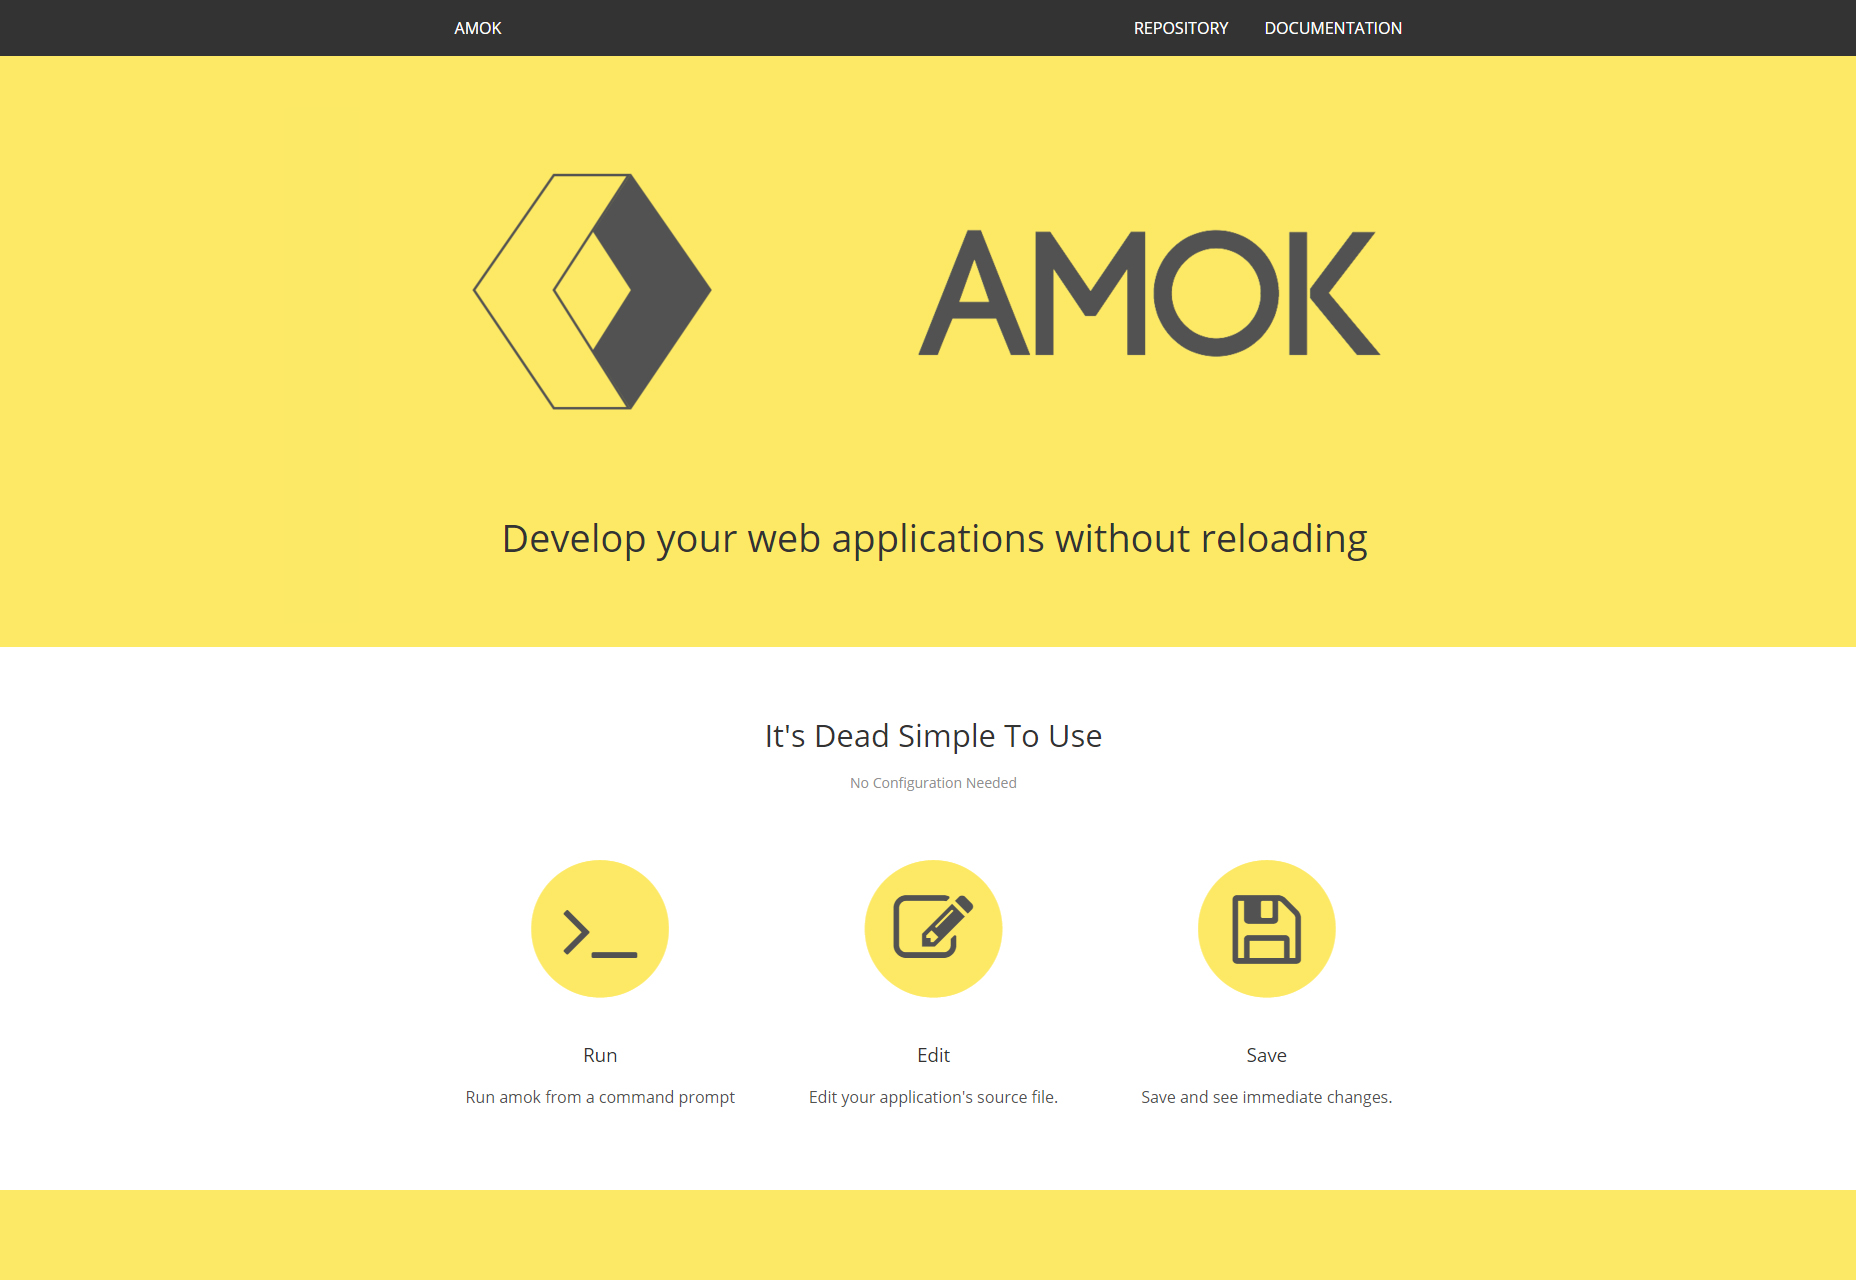 amok-develop-your-web-application-without-reloading